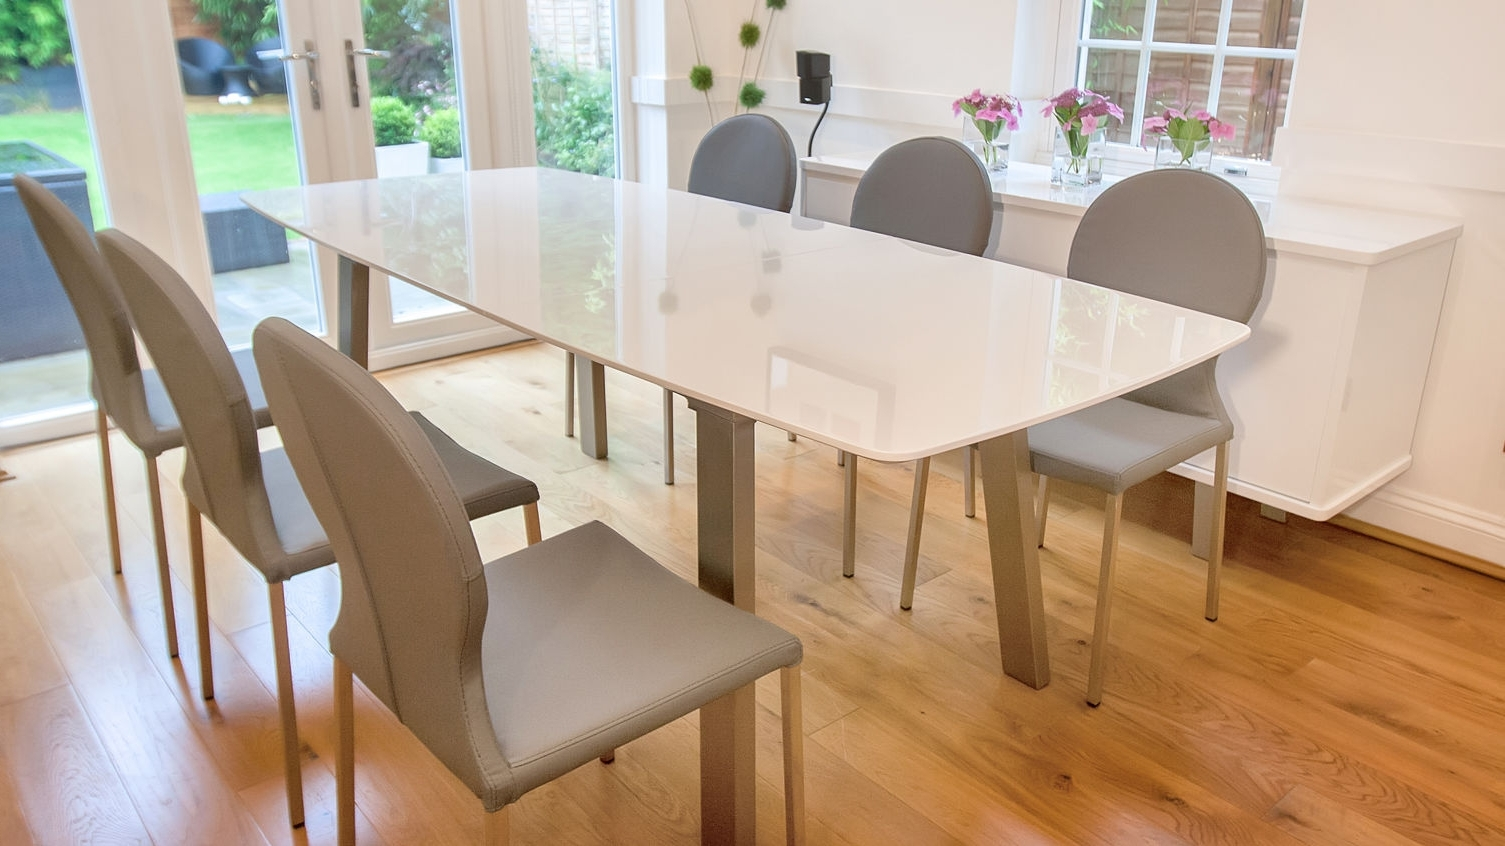 Extending Dining Tables And Chairs For Well Known Extending Dining Room Tables And Chairs Dining Room Chair Slipcovers (View 12 of 25)